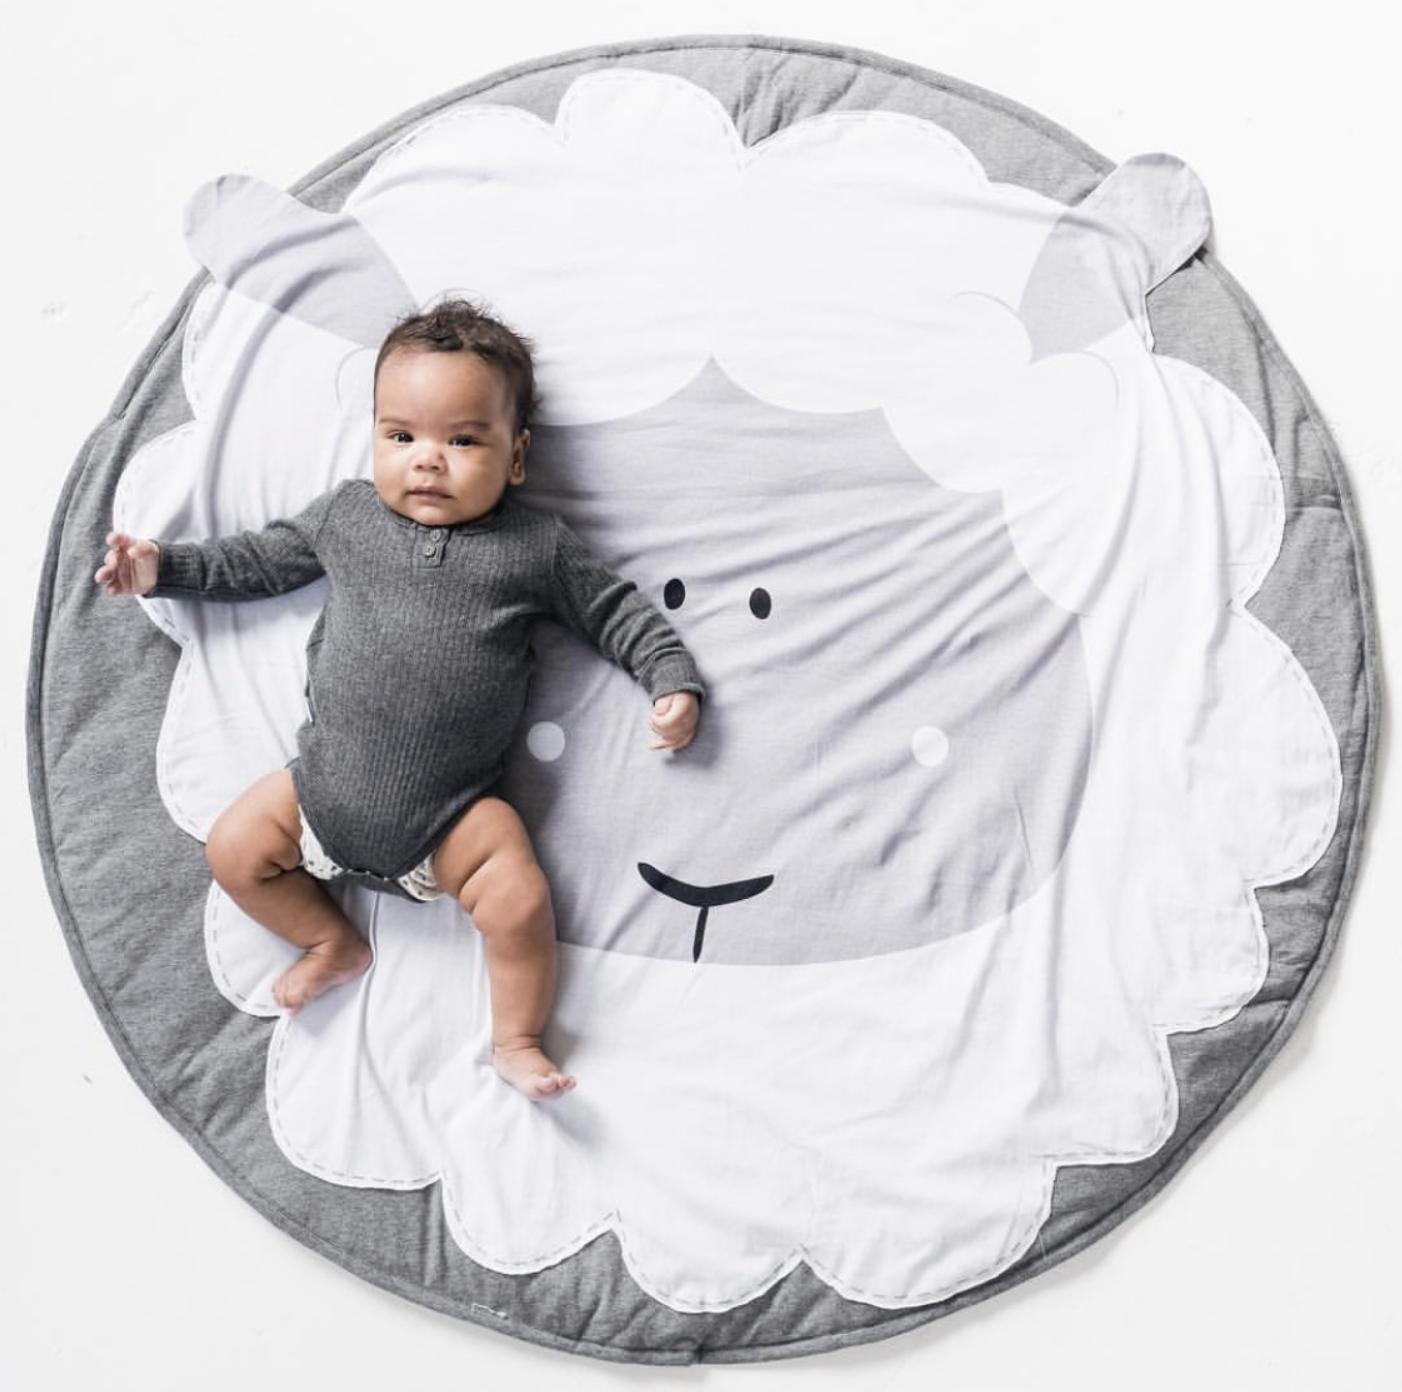 Soft Cotton Baby Game Activity Play Mat Floor Rug